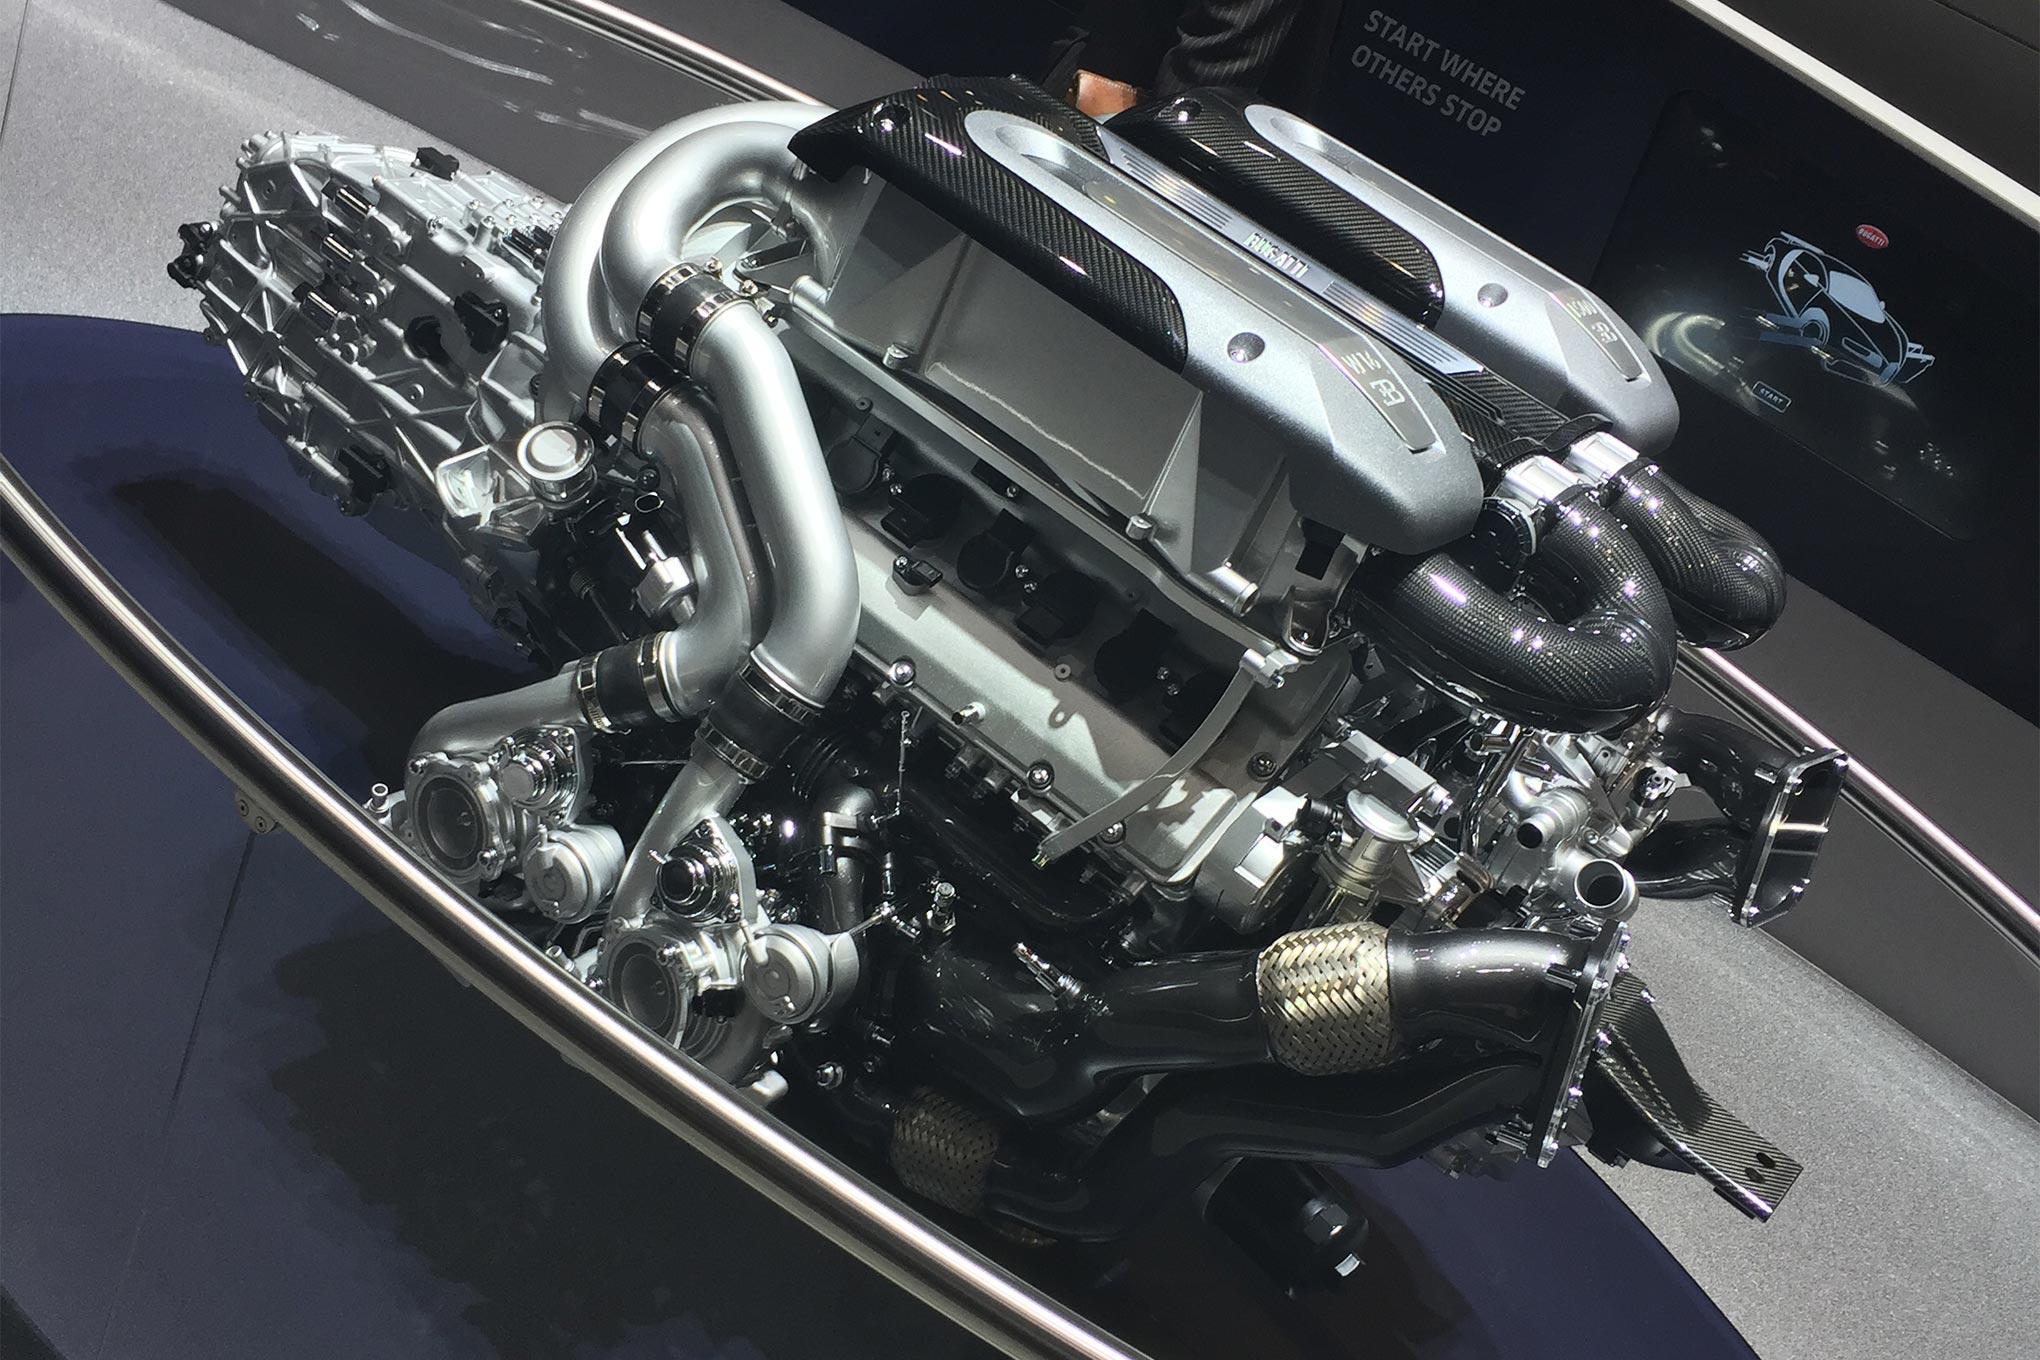 Bugatti Engine Diagram Simple Wiring Options We Have A New Enemy The 1500hp Quad Turbo W16 Chiron Manual